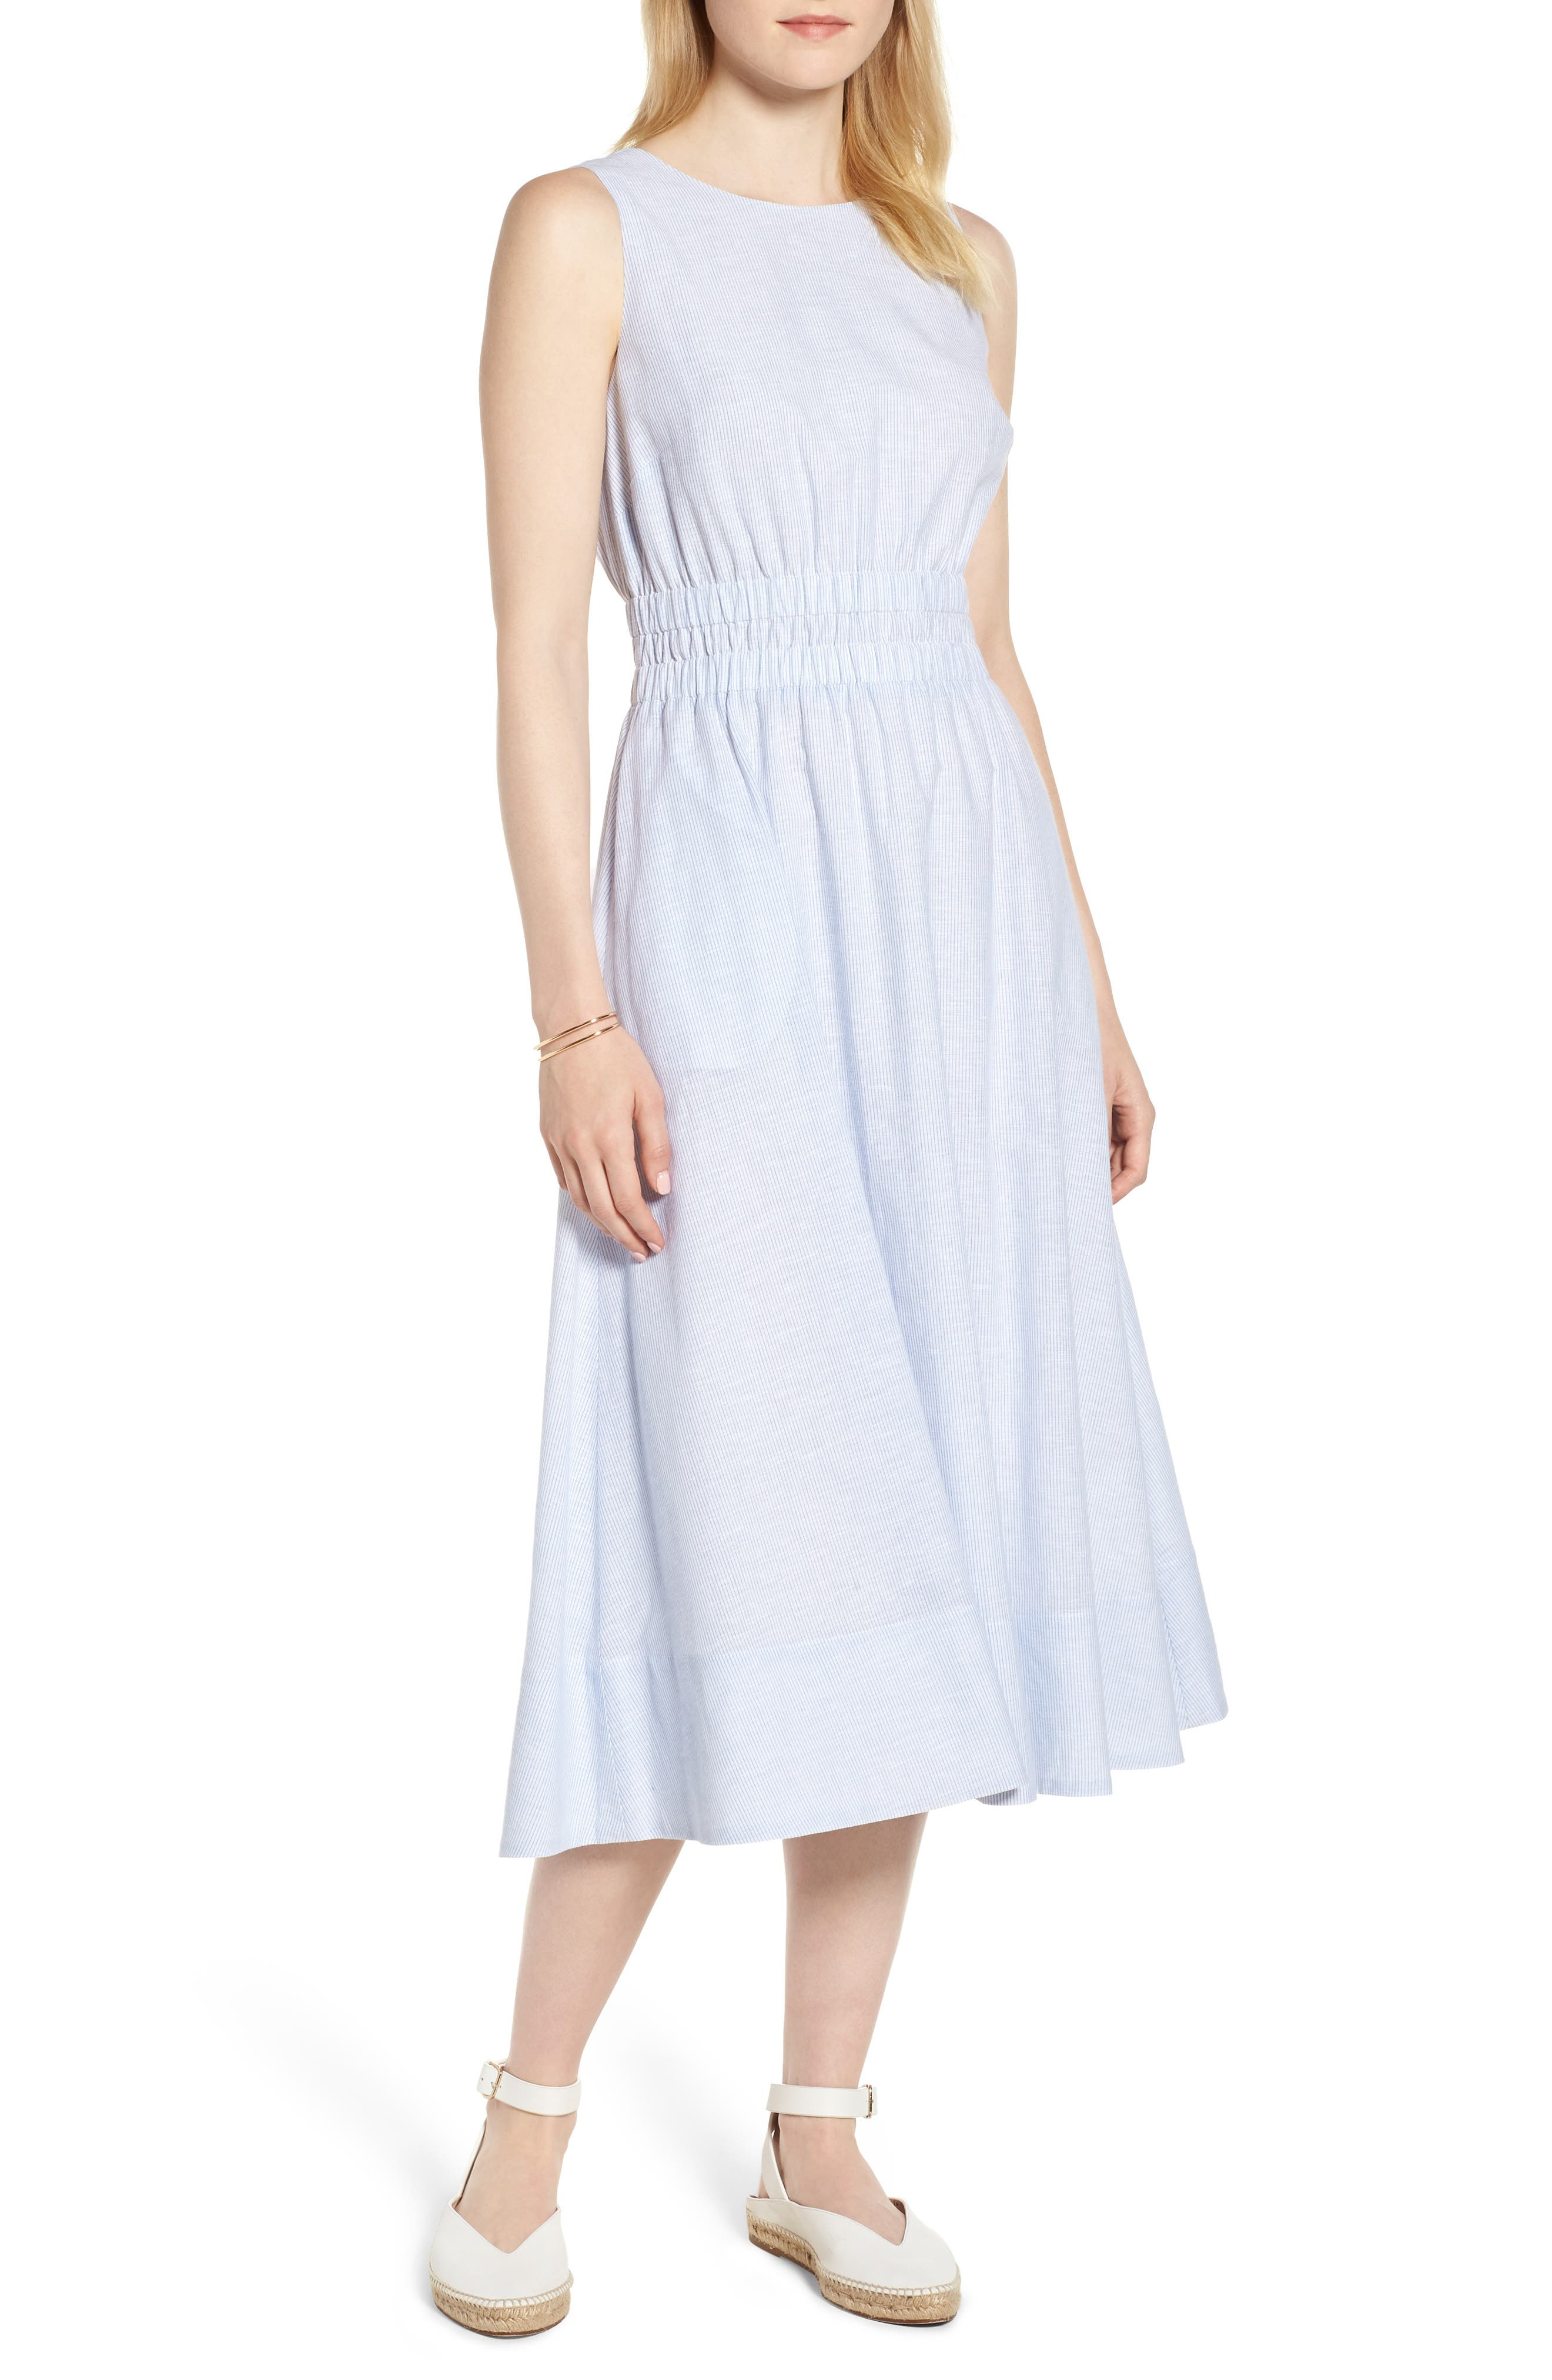 Smocked Waist Pinstripe Midi Dress,                             Main thumbnail 1, color,                             White- Blue Mini Stripe